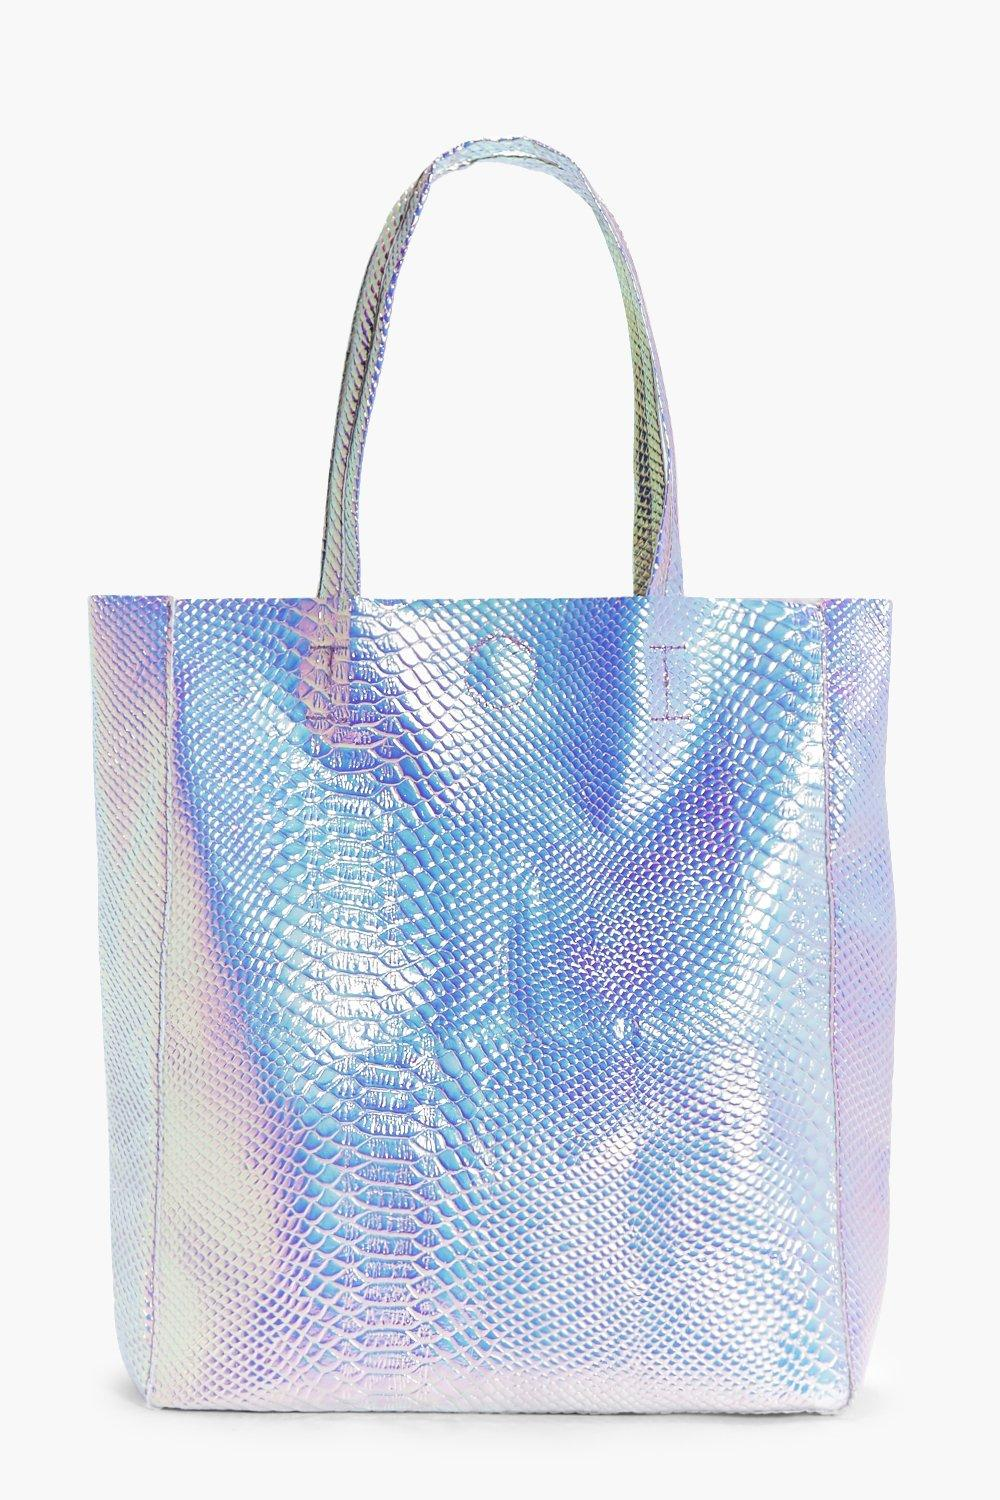 Mermaid Holographic Shopper Beach Bag - pink - Edi